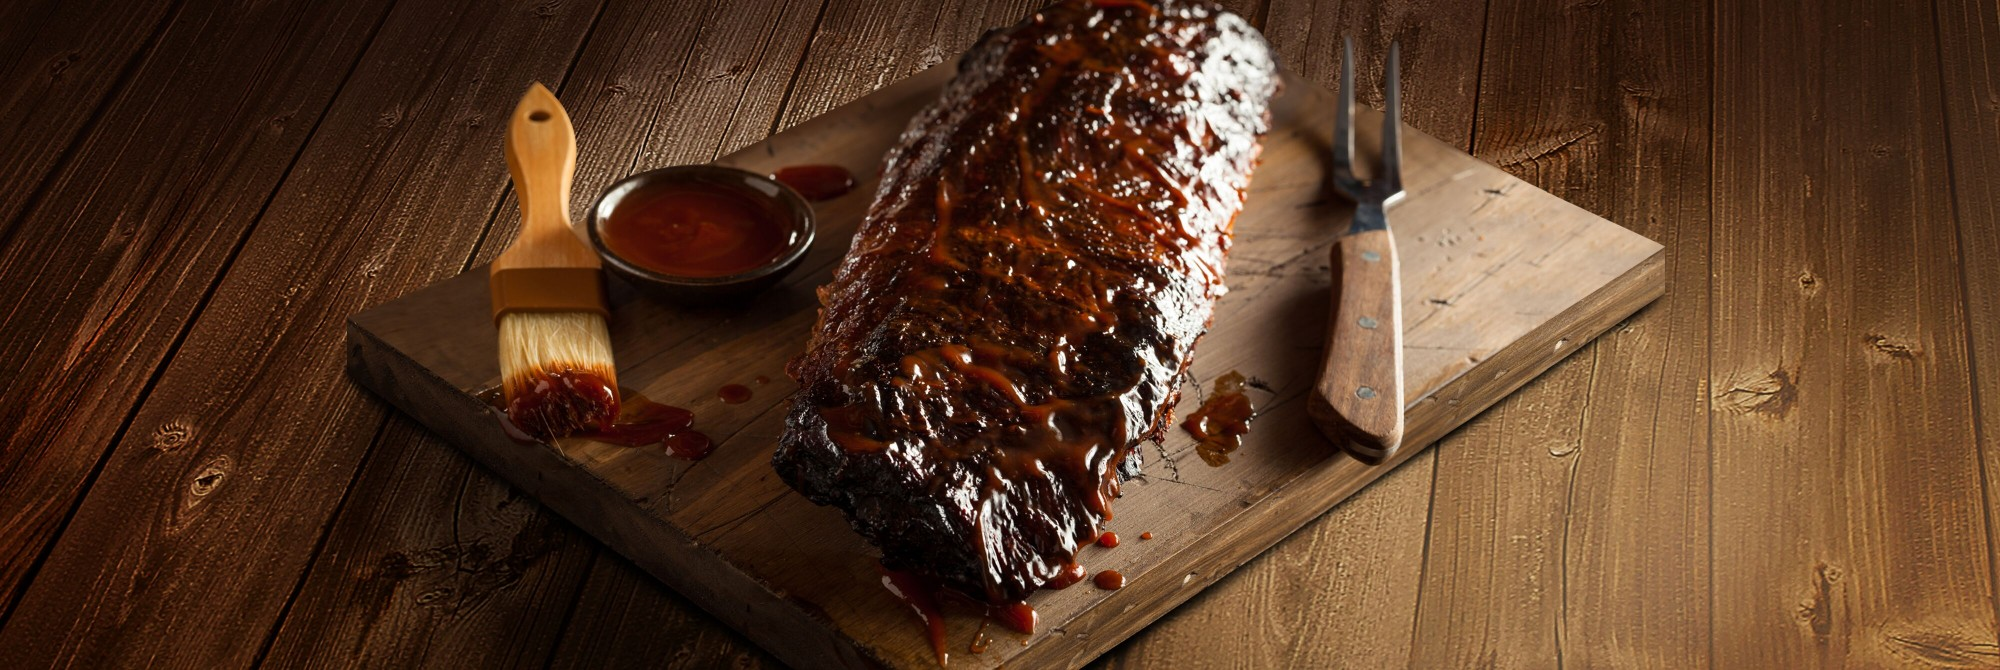 BBQ Sauced Baby Back Ribs